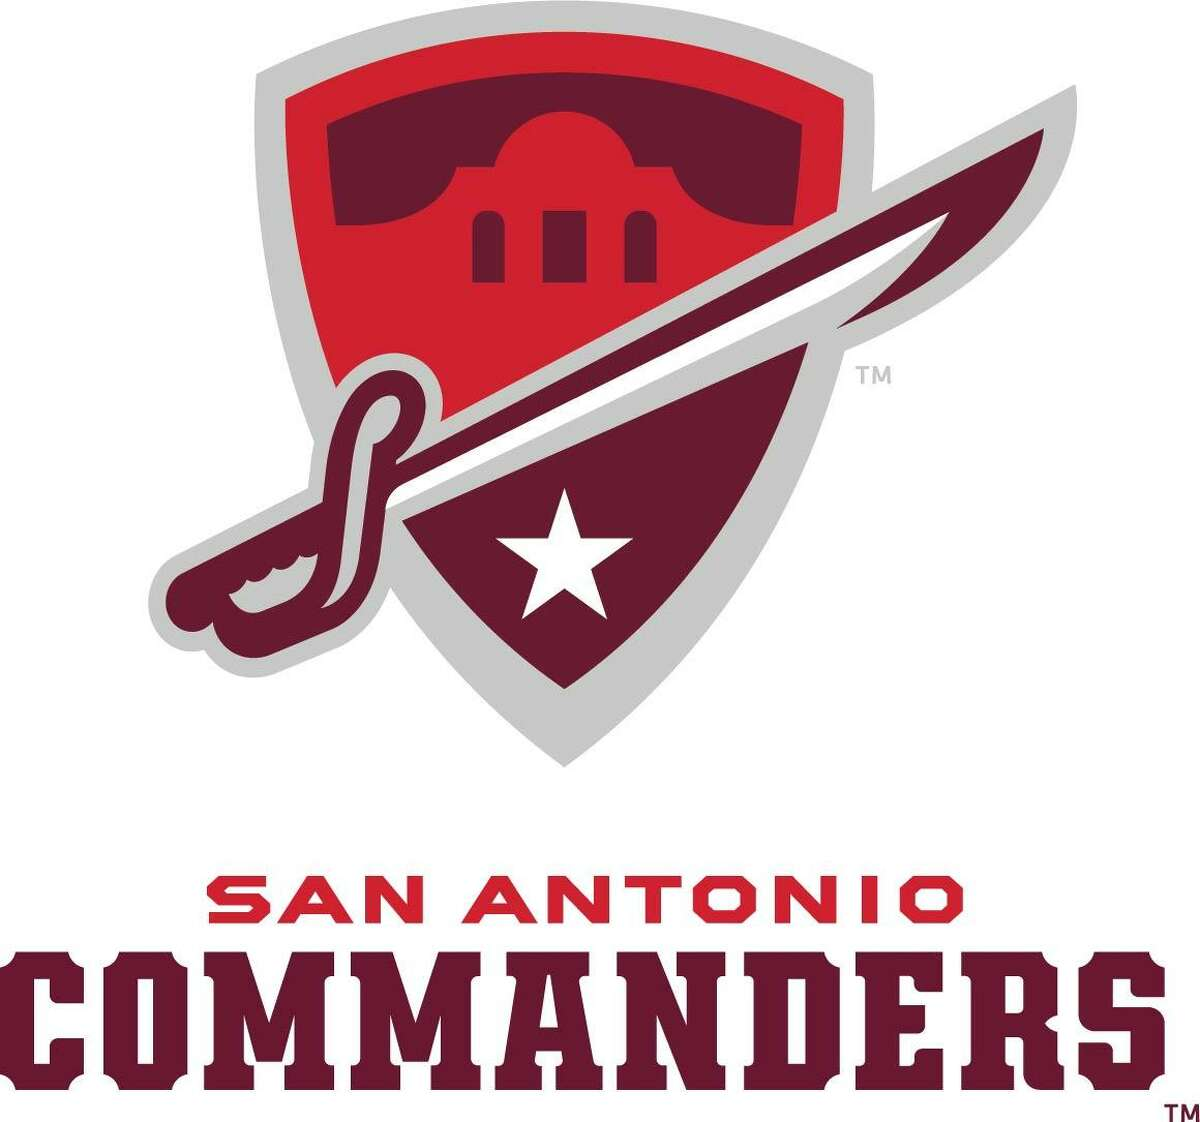 San Antonio's new professional football team, which will be a part of the Alliance of American Football league, is called the San Antonio Commanders.